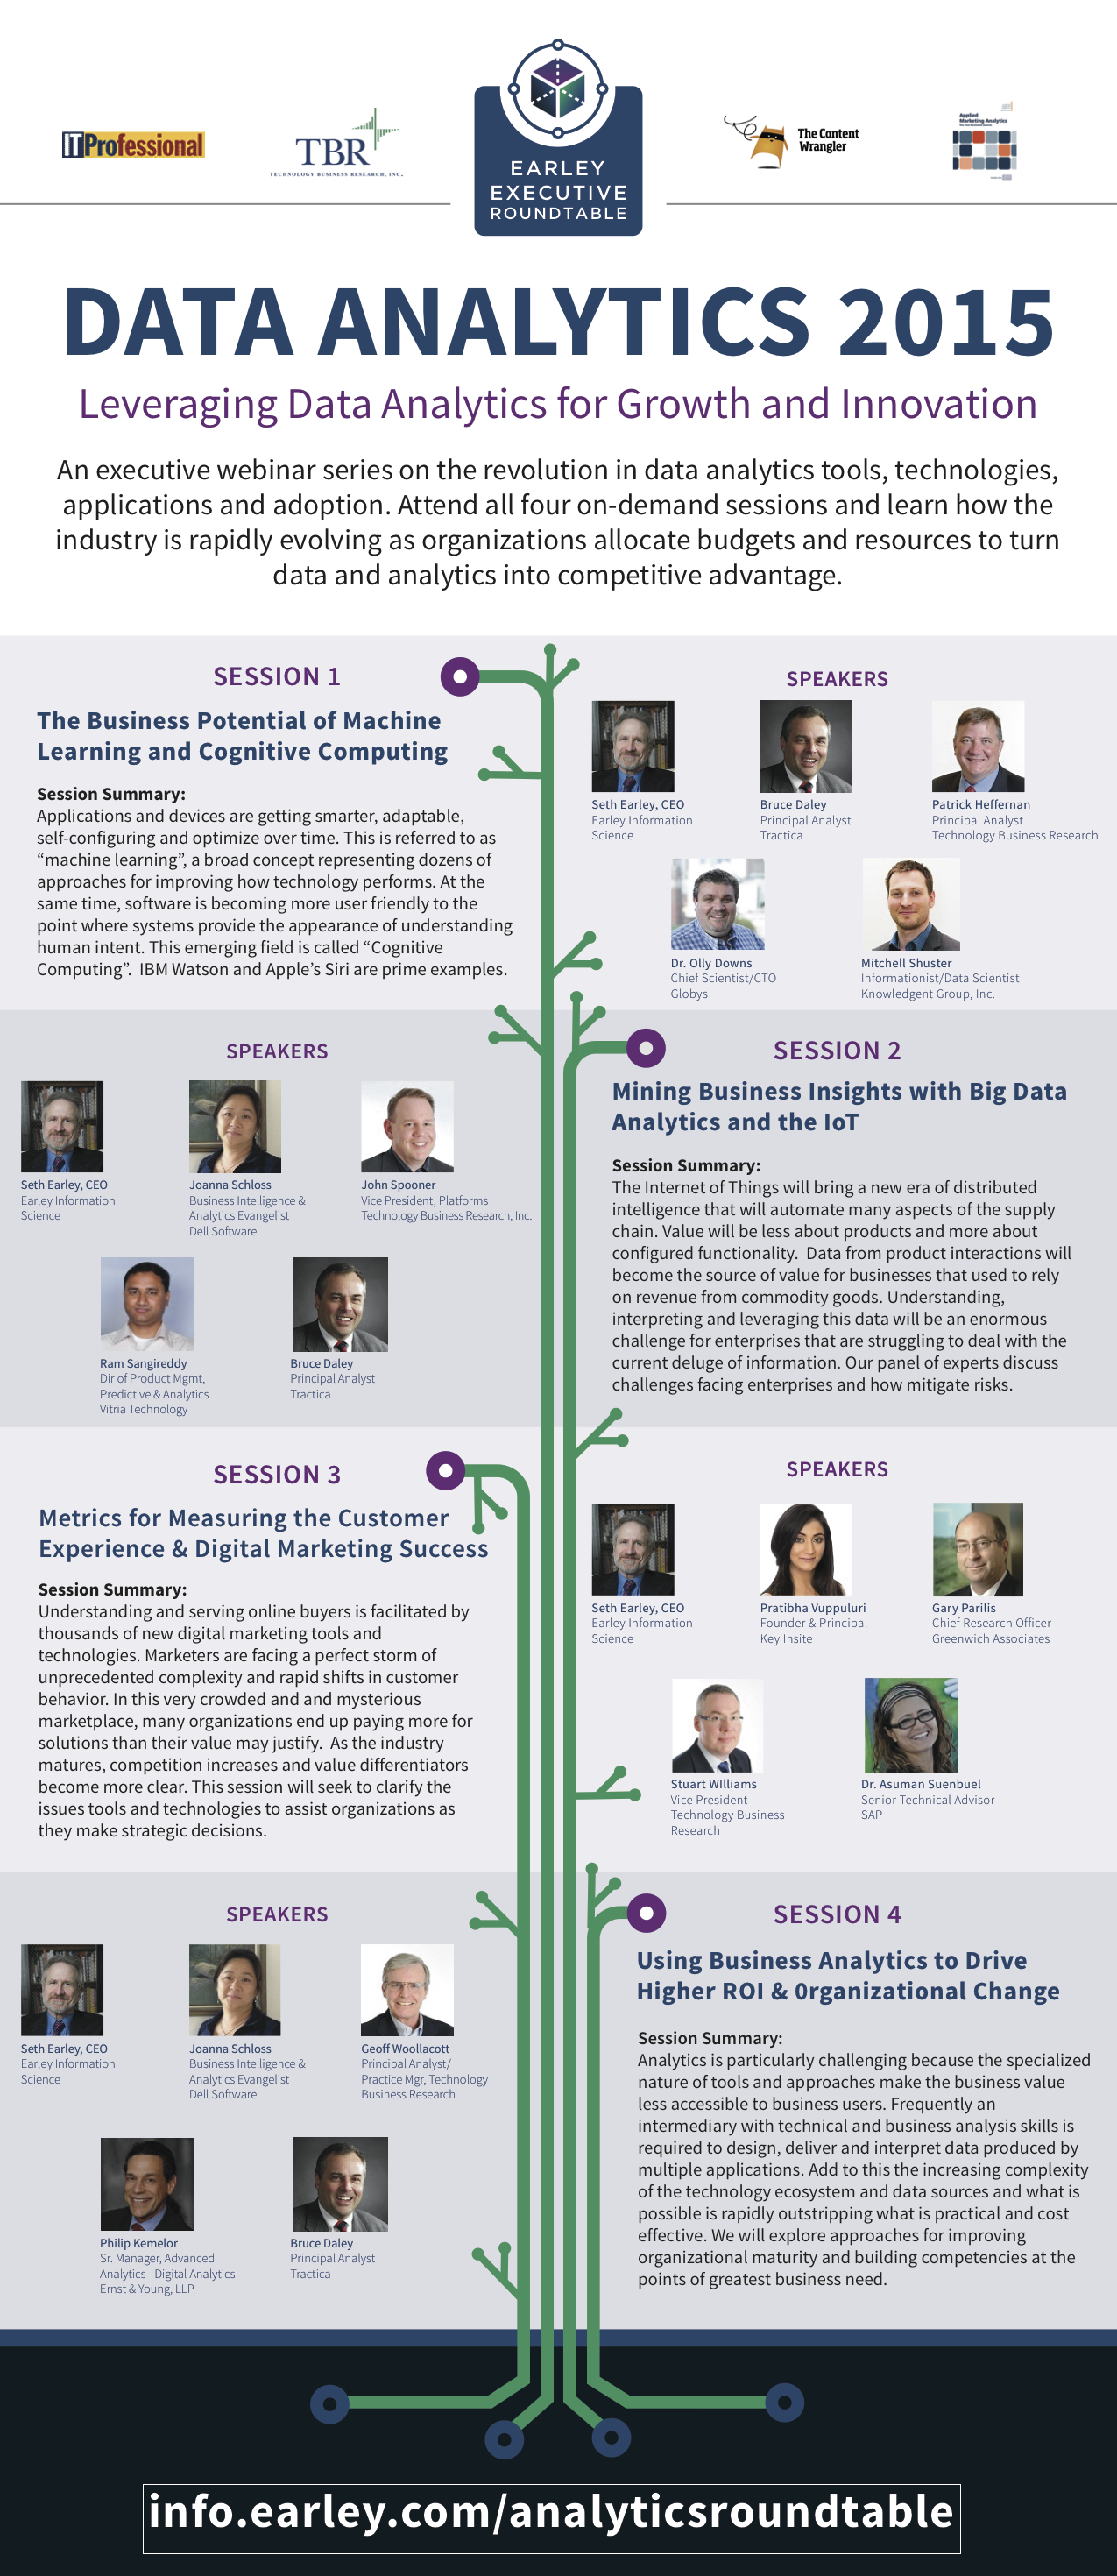 EIS-Infographic-Data-Analytics-Roundtable-Summary-Final